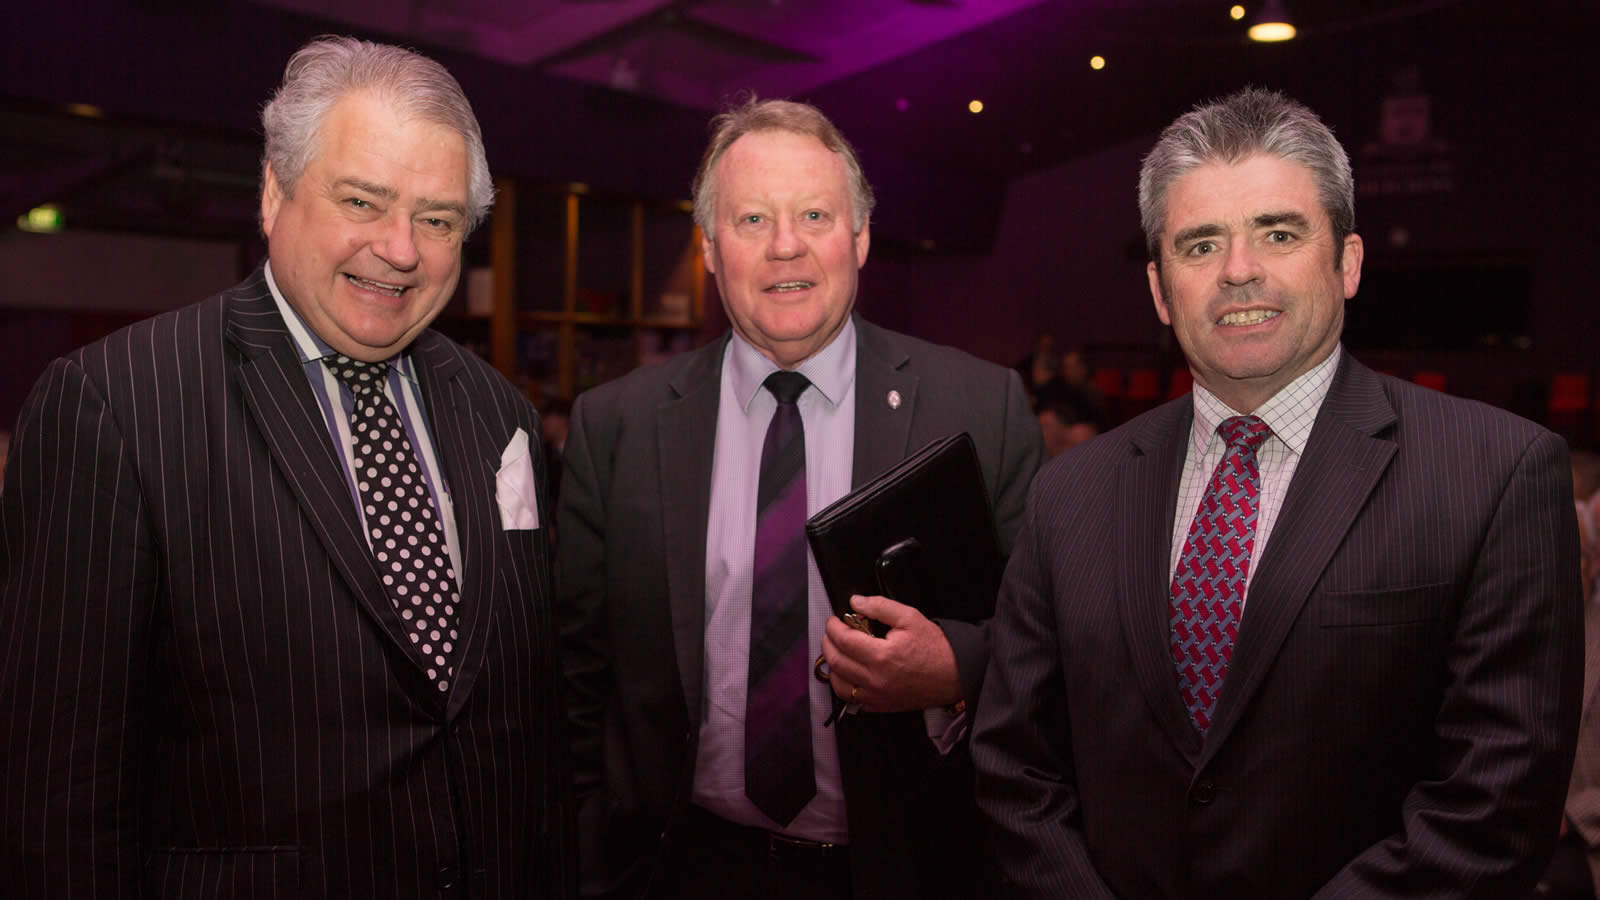 Dr Keith Suter, Headmaster Mr Warwick Dean and Chairman of the Board Mr David Morris. Photo courtesy of Barrie Irons. (large)